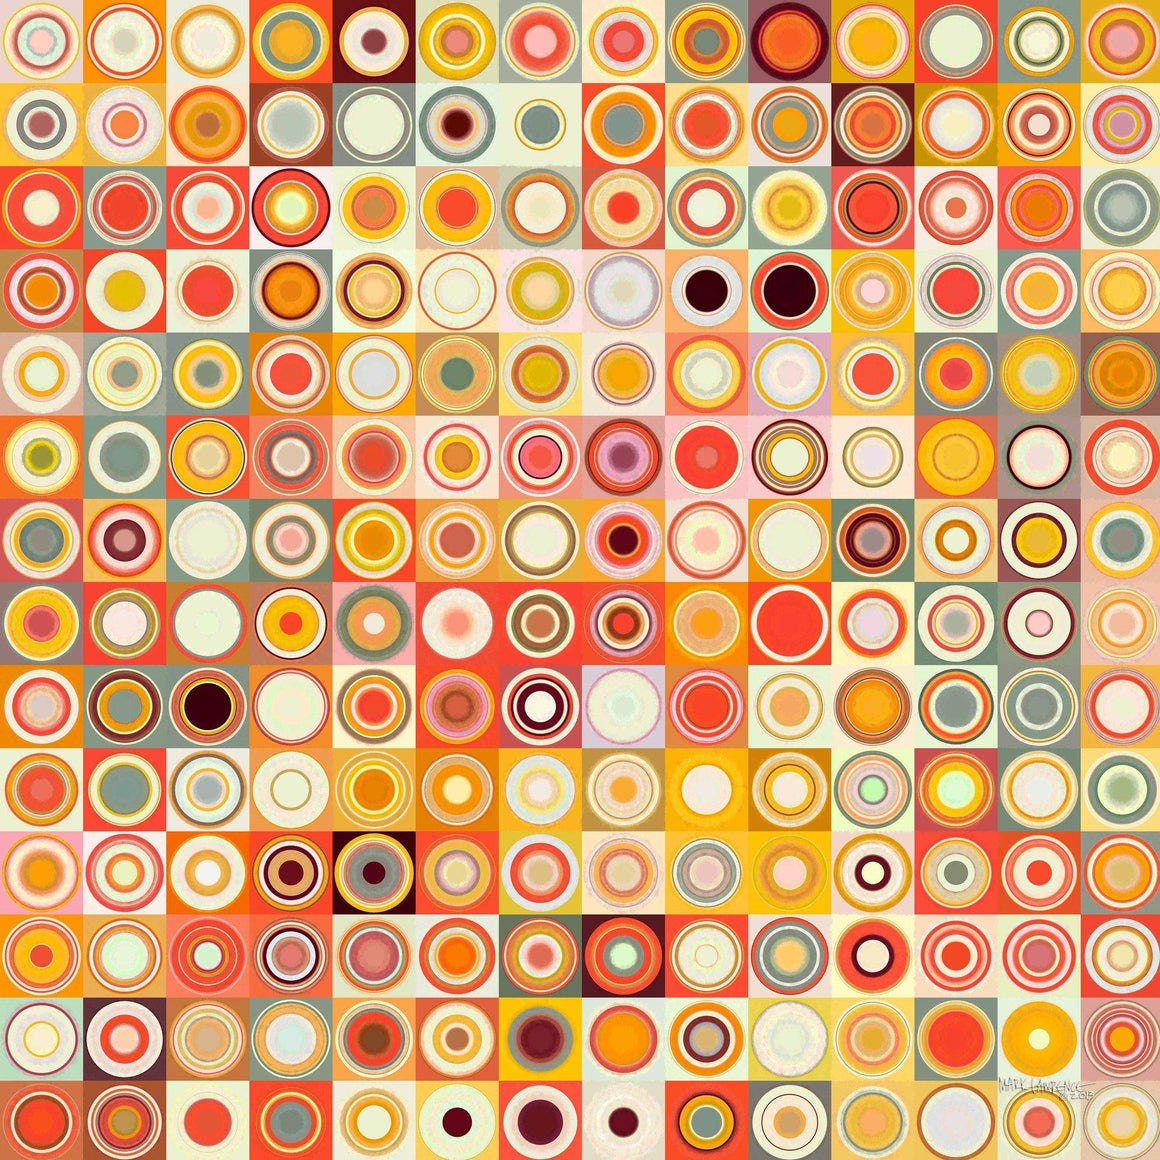 Circles and Squares #26. Modern Fine Art